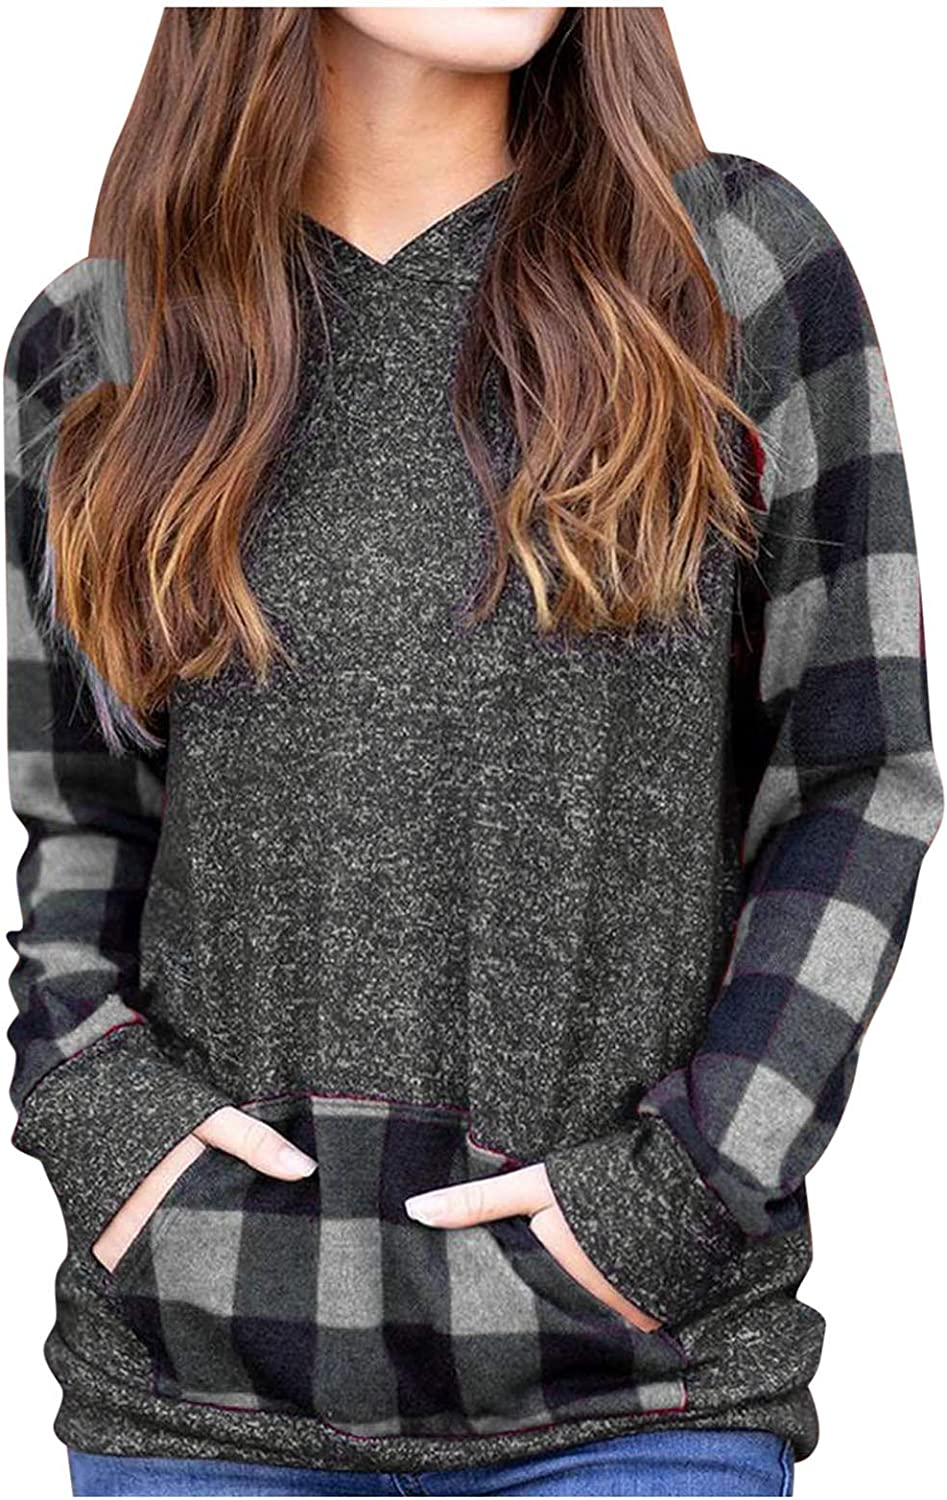 Plaid Long Sleeve Shirts for Selling rankings Women Max 43% OFF Neck Drawstring Casual Patc V